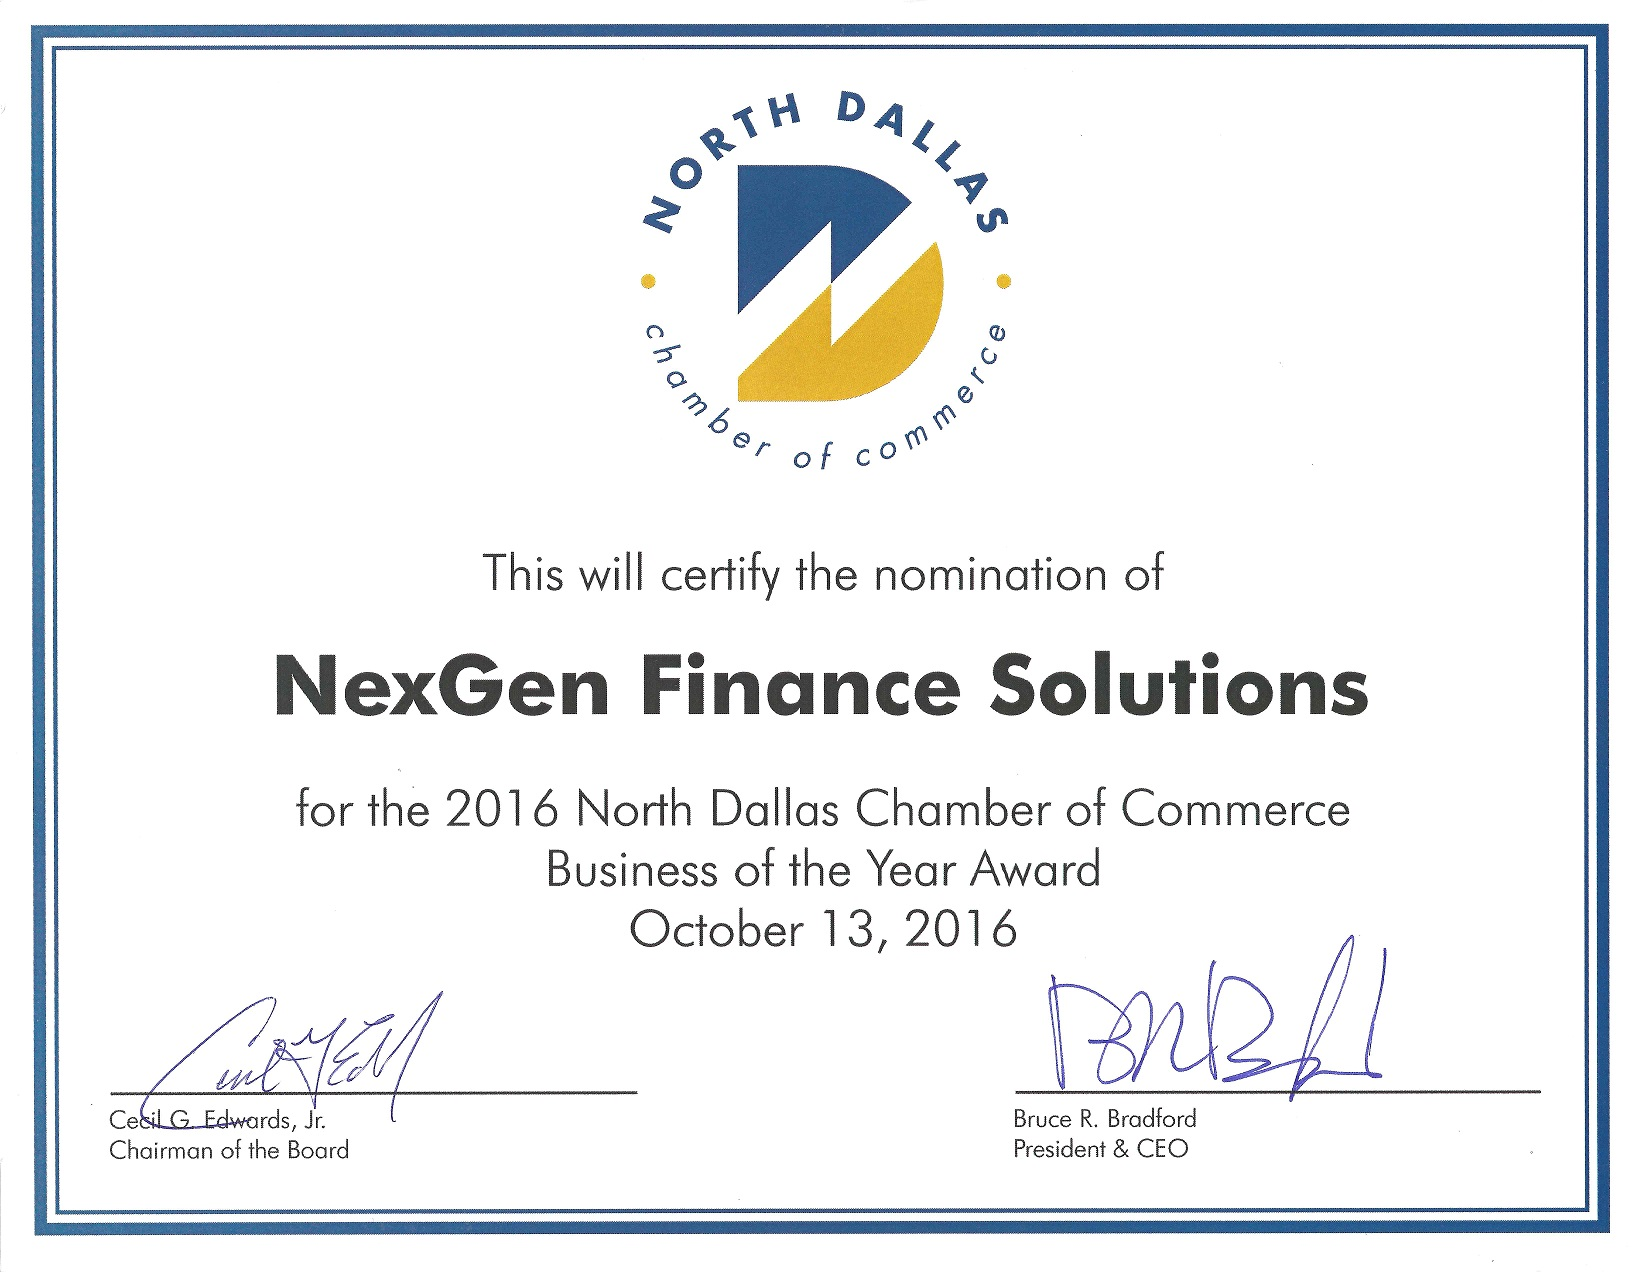 NexGen nominated for 2016 North Dallas Chamber of Commerce Business of Year